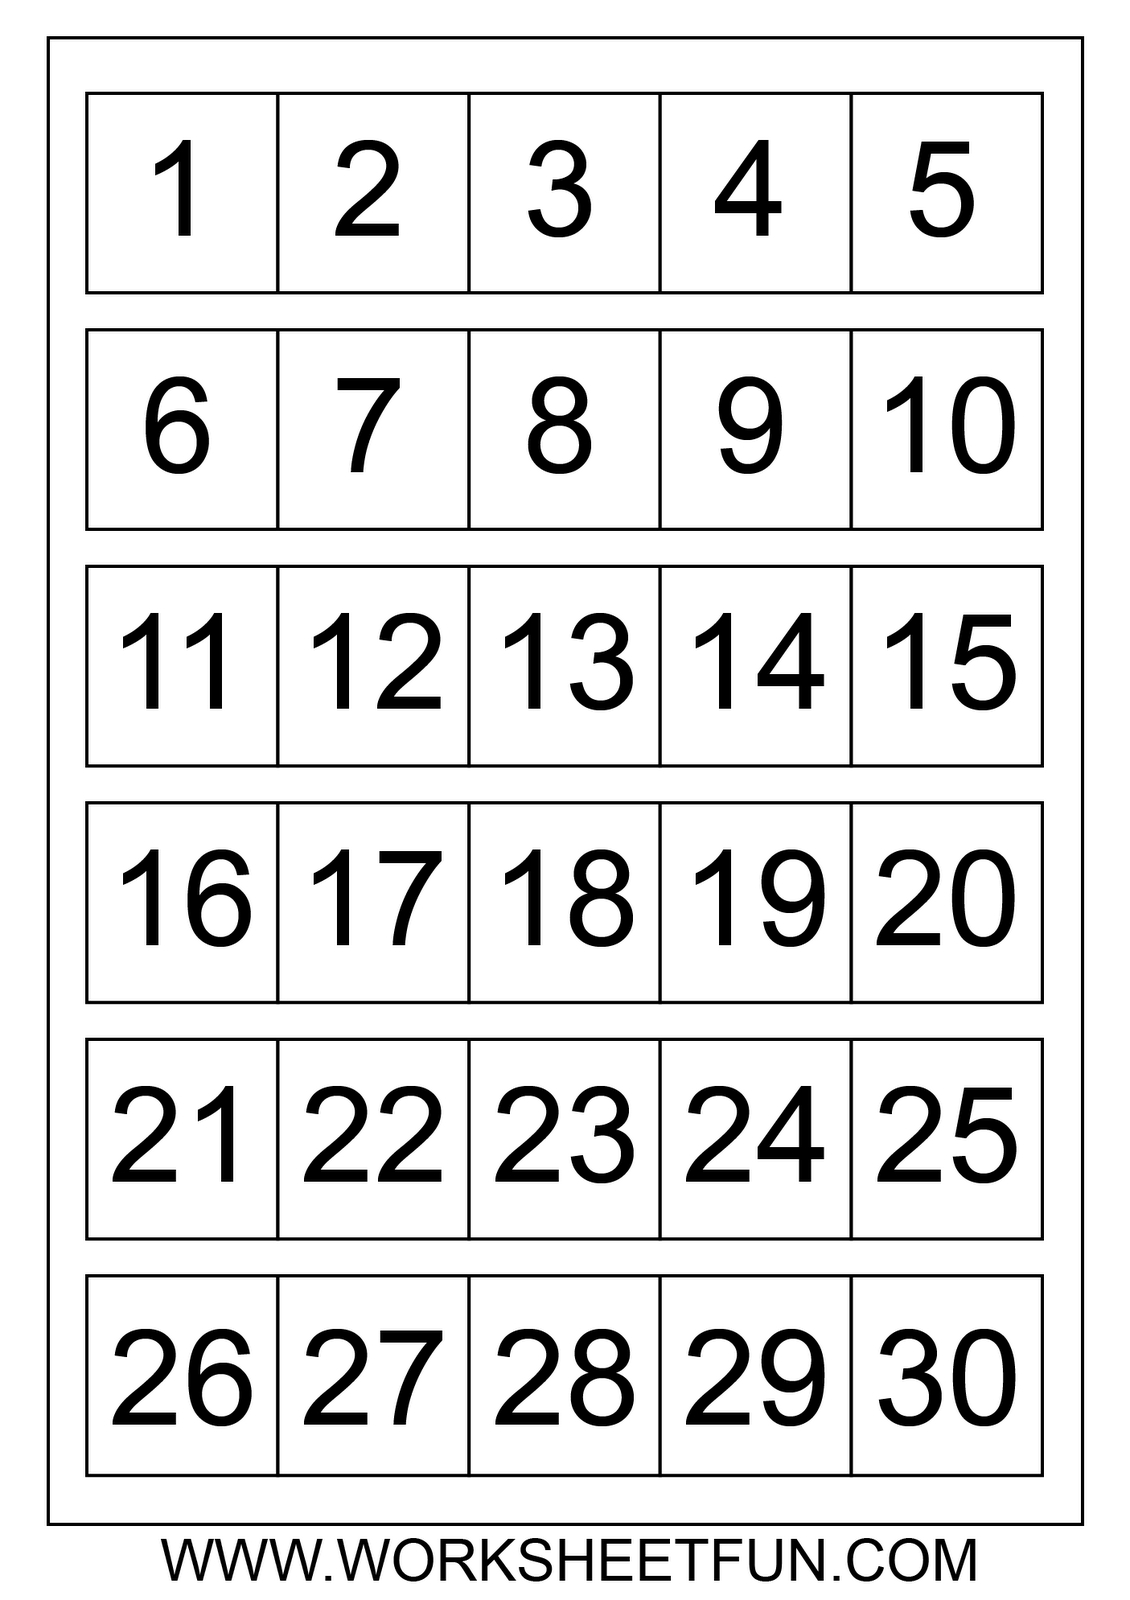 Large Printable Numbers 1 100   To Dot With Numbers Printable - Free Printable Number Flashcards 1 30